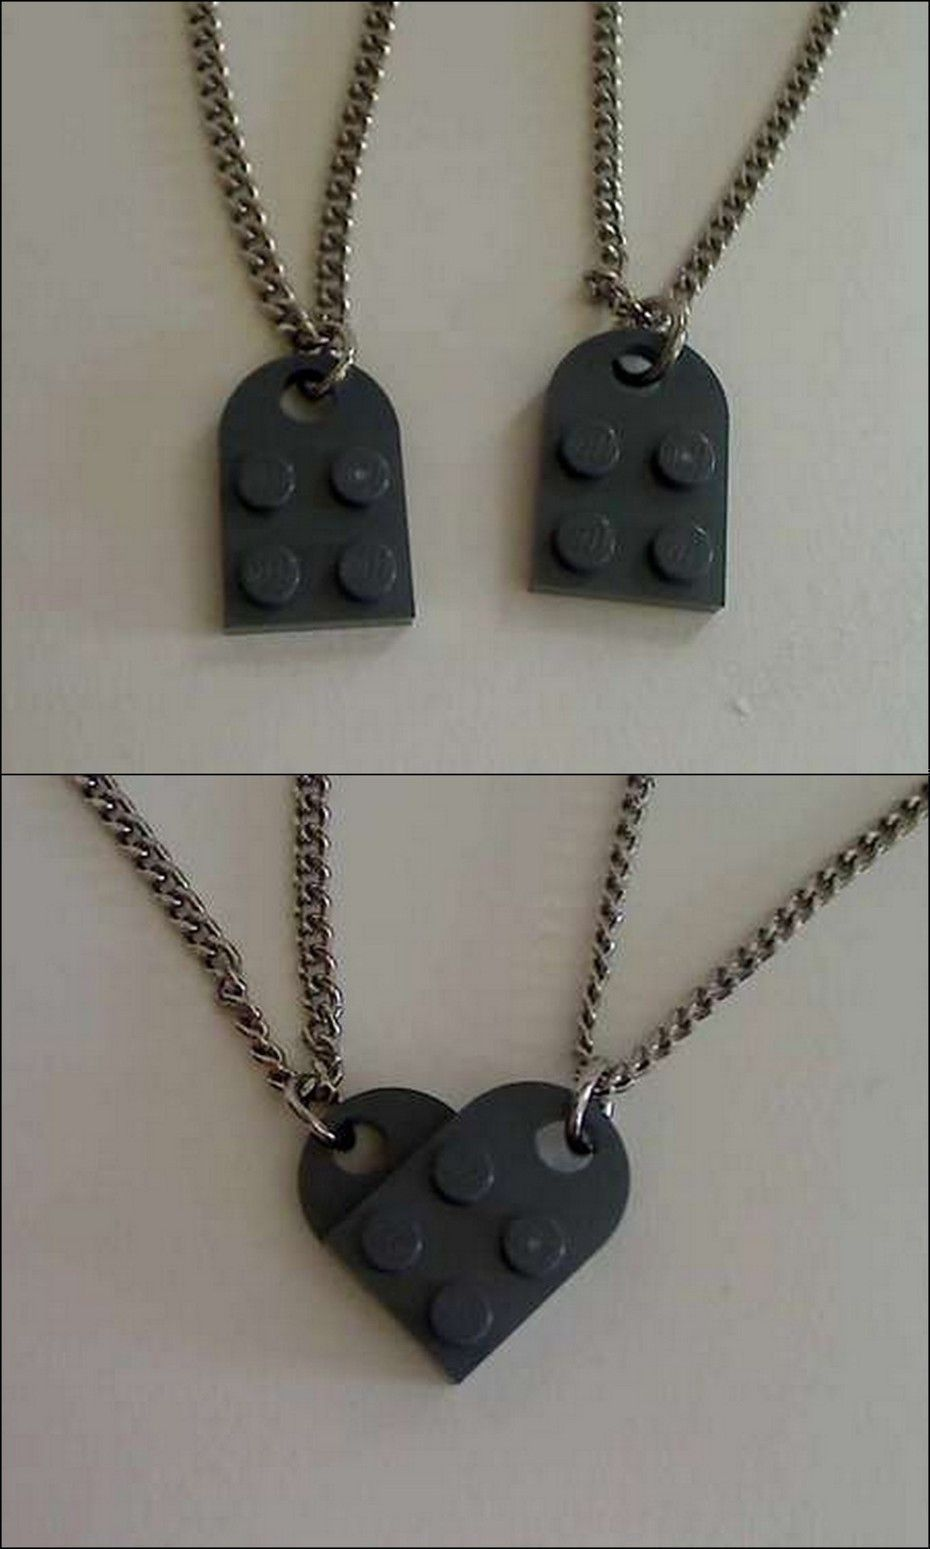 The Lego Love Necklace Teen Pinterest Lego Necklace Lego And